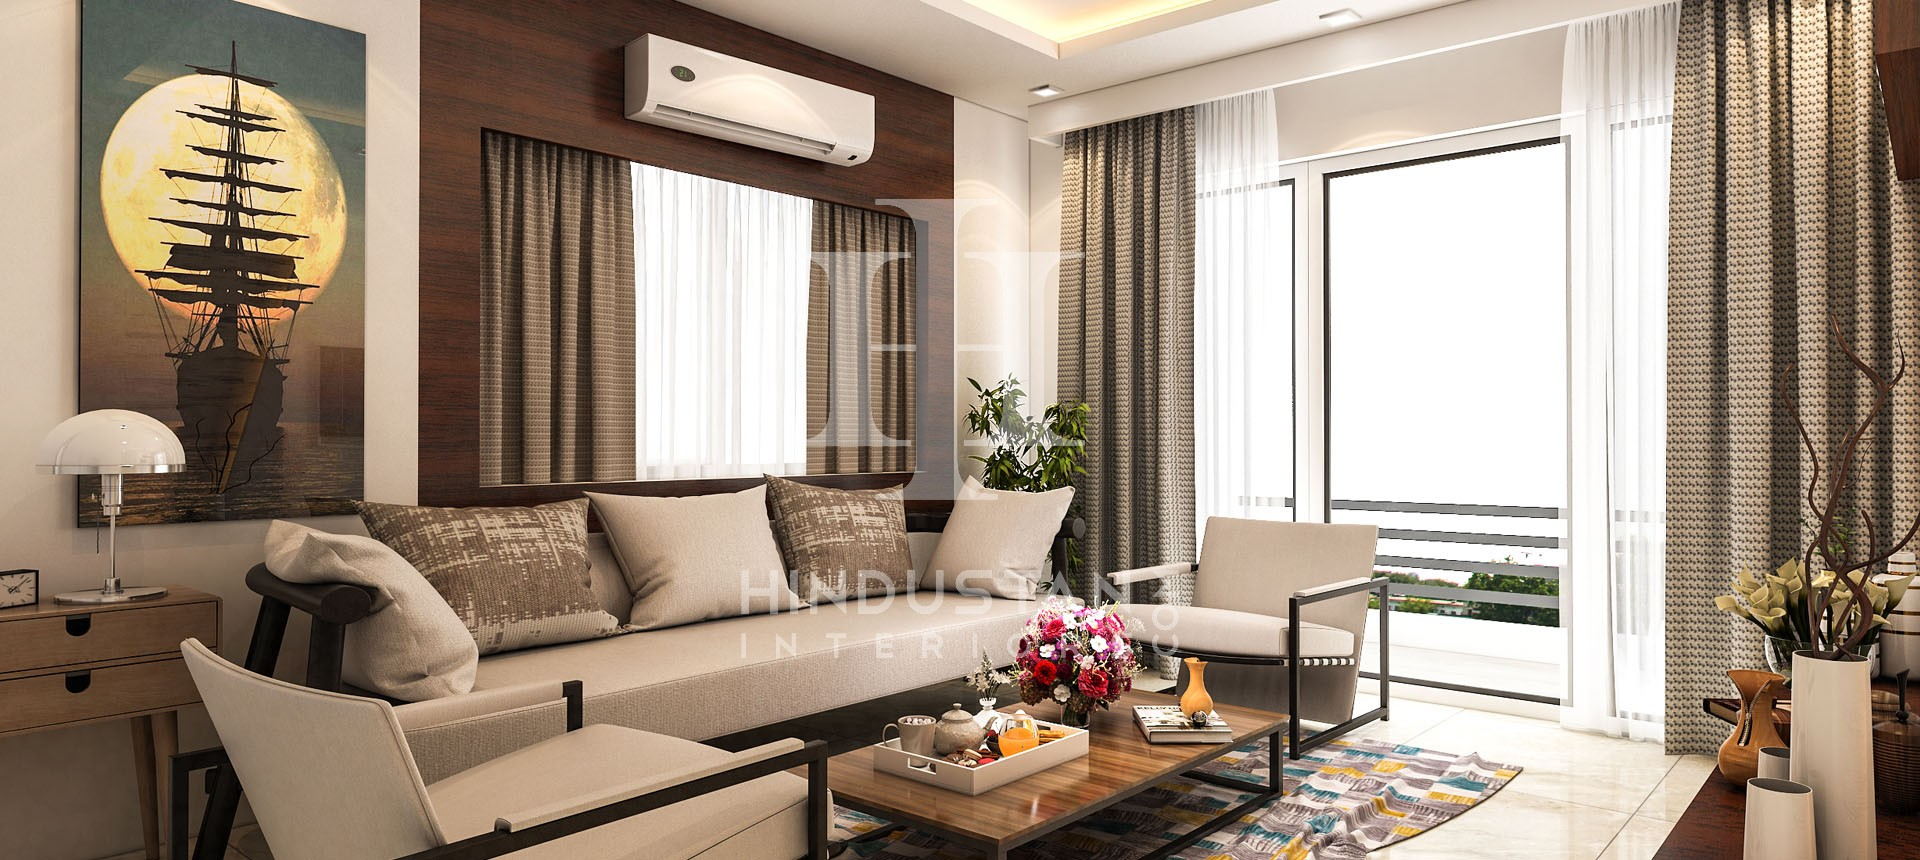 Hindustan Interiors Is One Of The Leading Fully Integrated Aluminum Company  In India Specializing In A Wide Range Of Aluminum Products And Solutions.